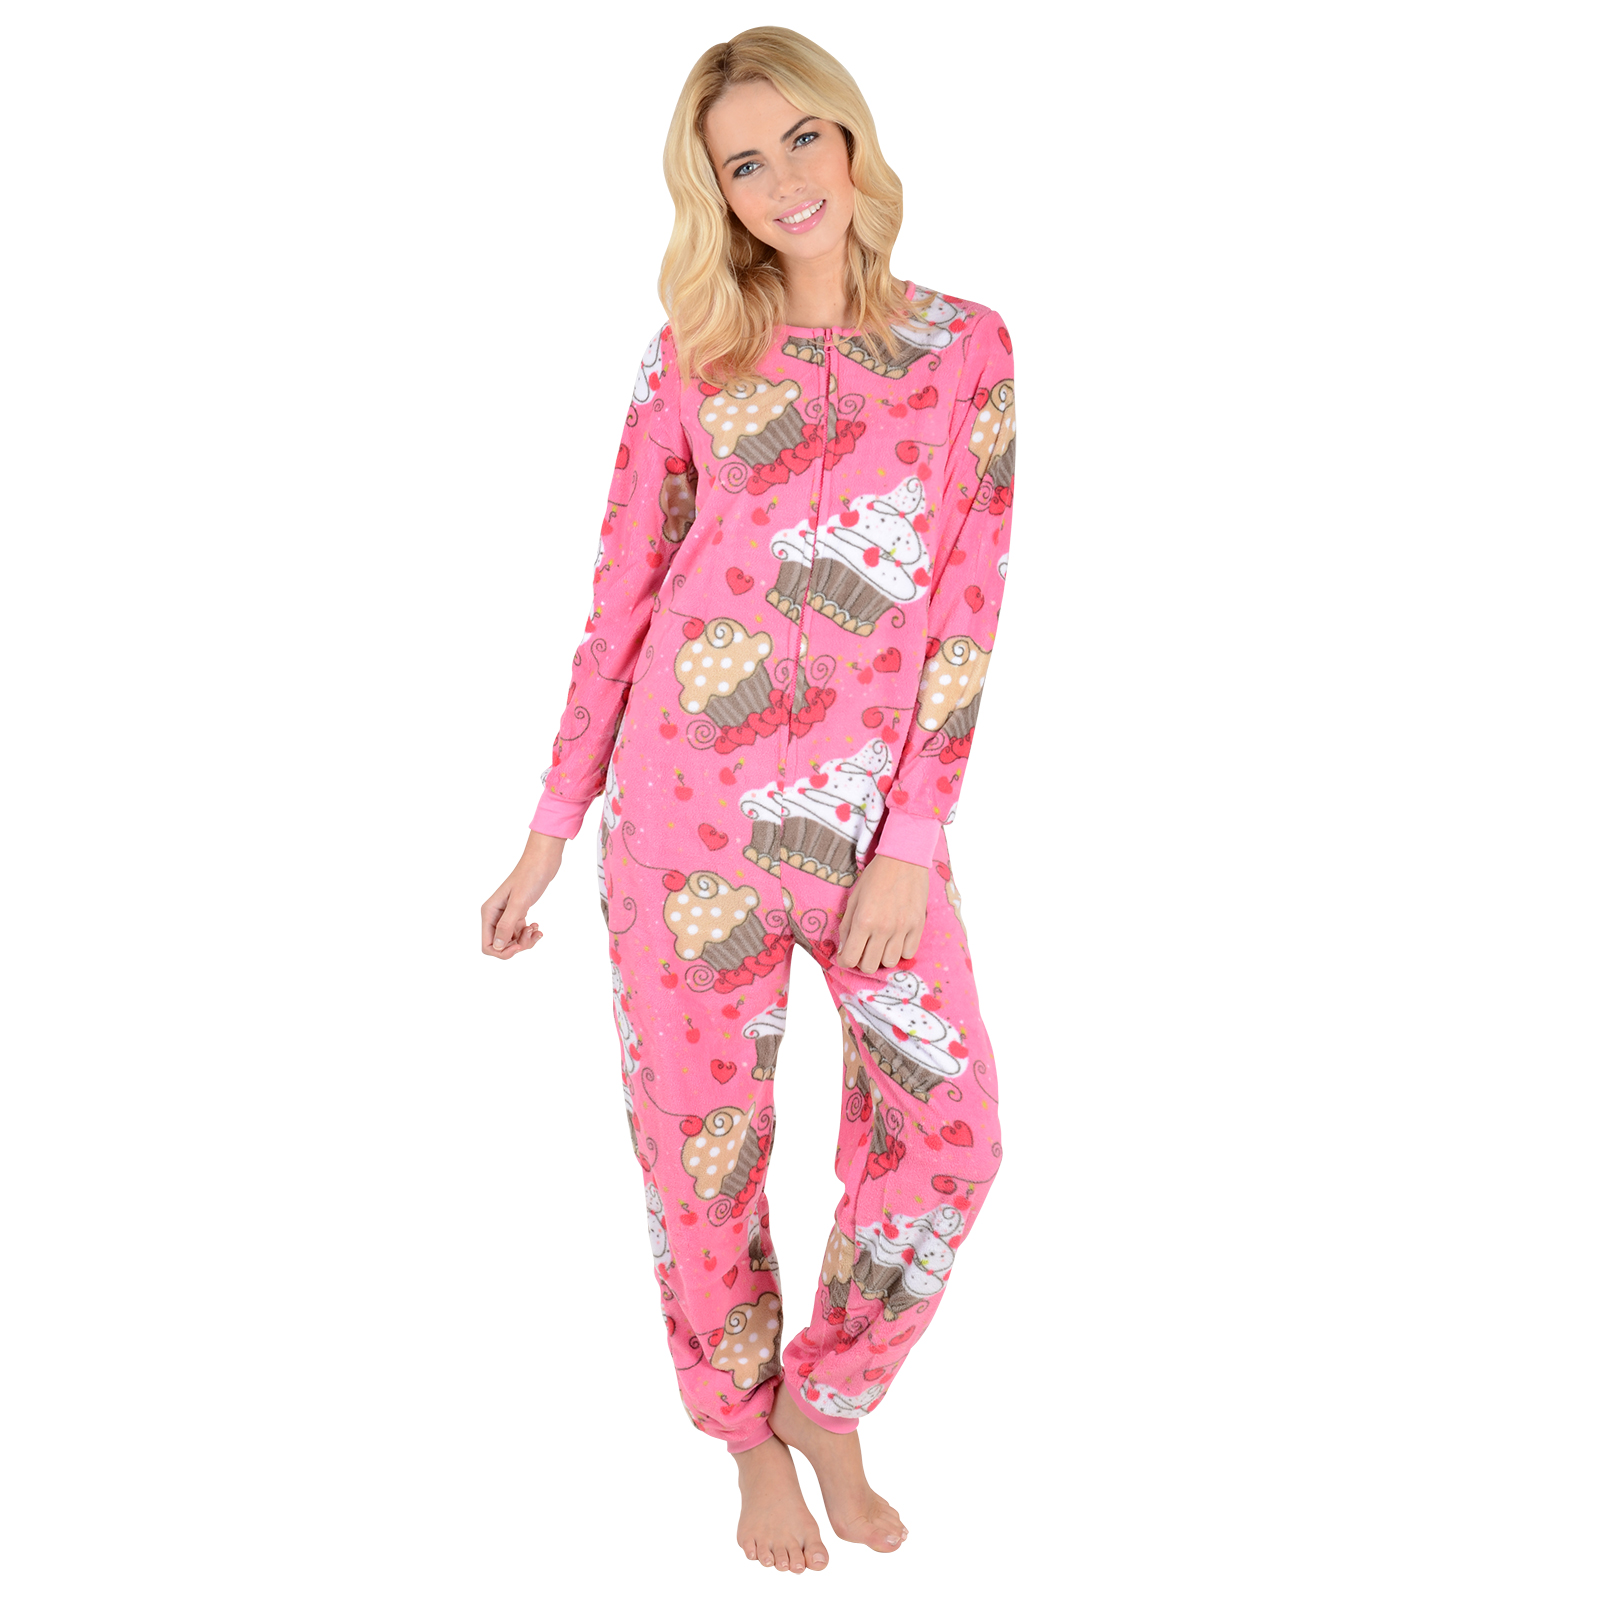 Cozy Up in Men's Novelty One-Piece Pajamas. Whether you're trying to ward off the winter chills or simply looking for a weekend outfit, men's novelty one-piece pajamas are .